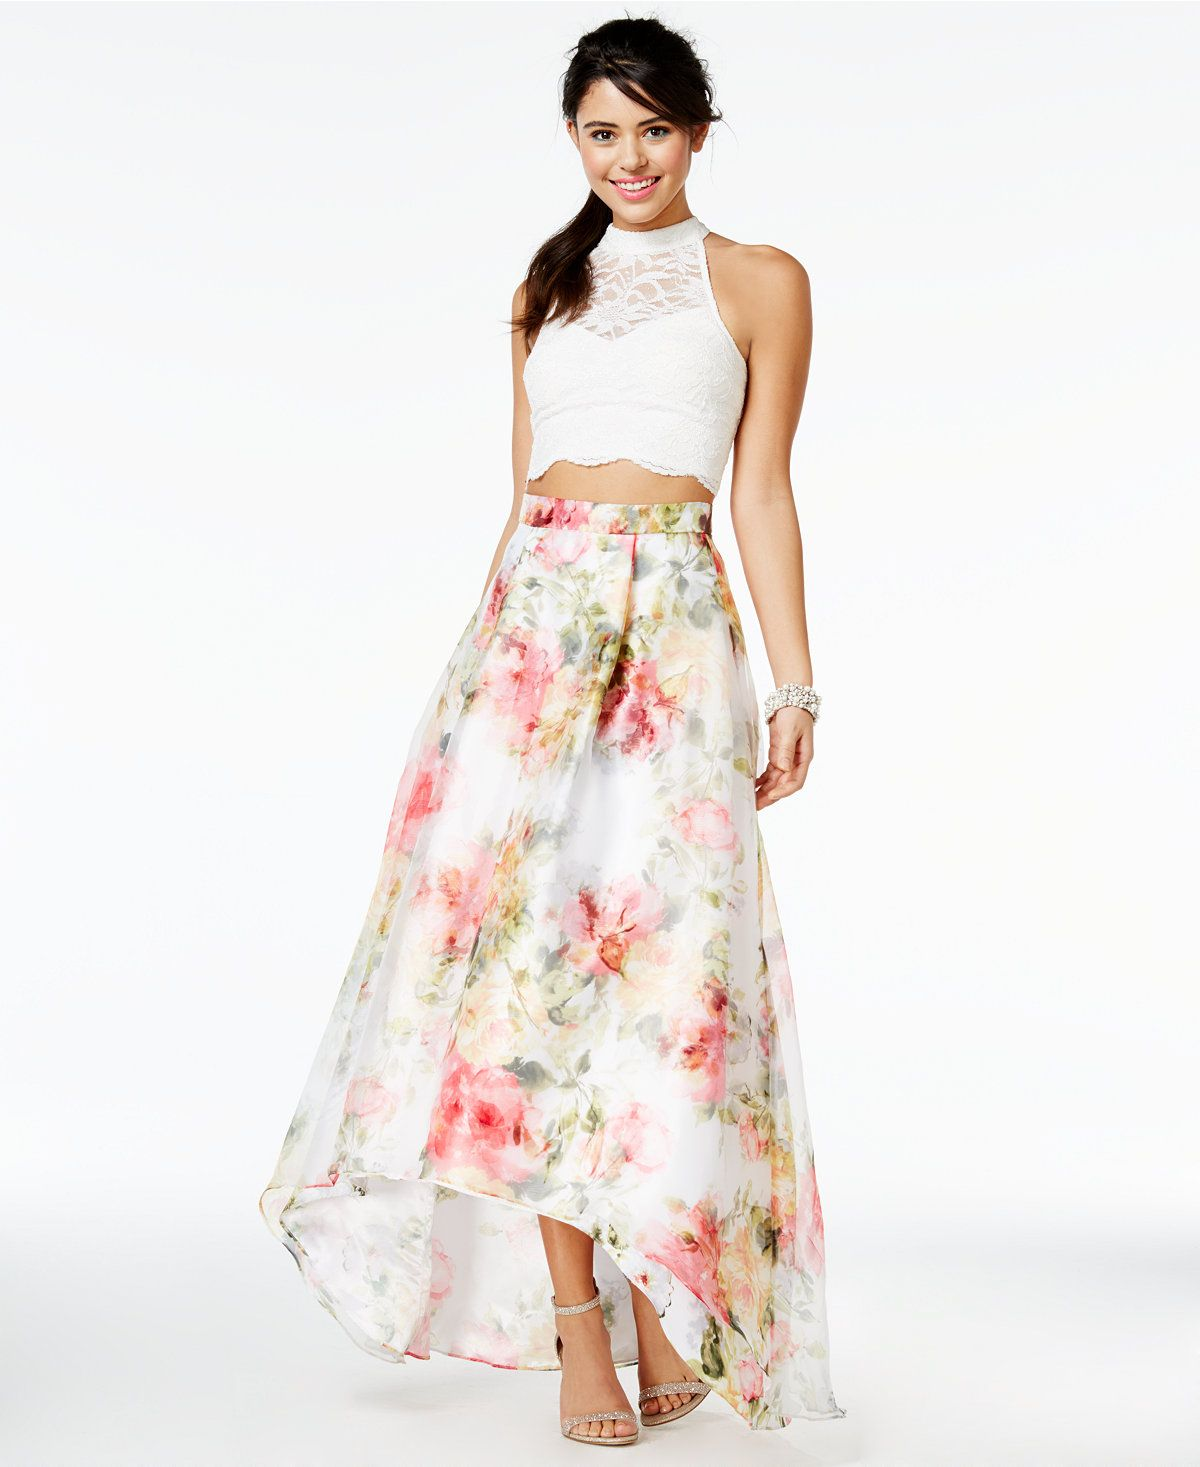 47ce45a5b City Studios Juniors' 2-Pc. Floral-Print Halter Gown, A Macy's Exclusive  Style - Juniors Prom Dresses - Macy's